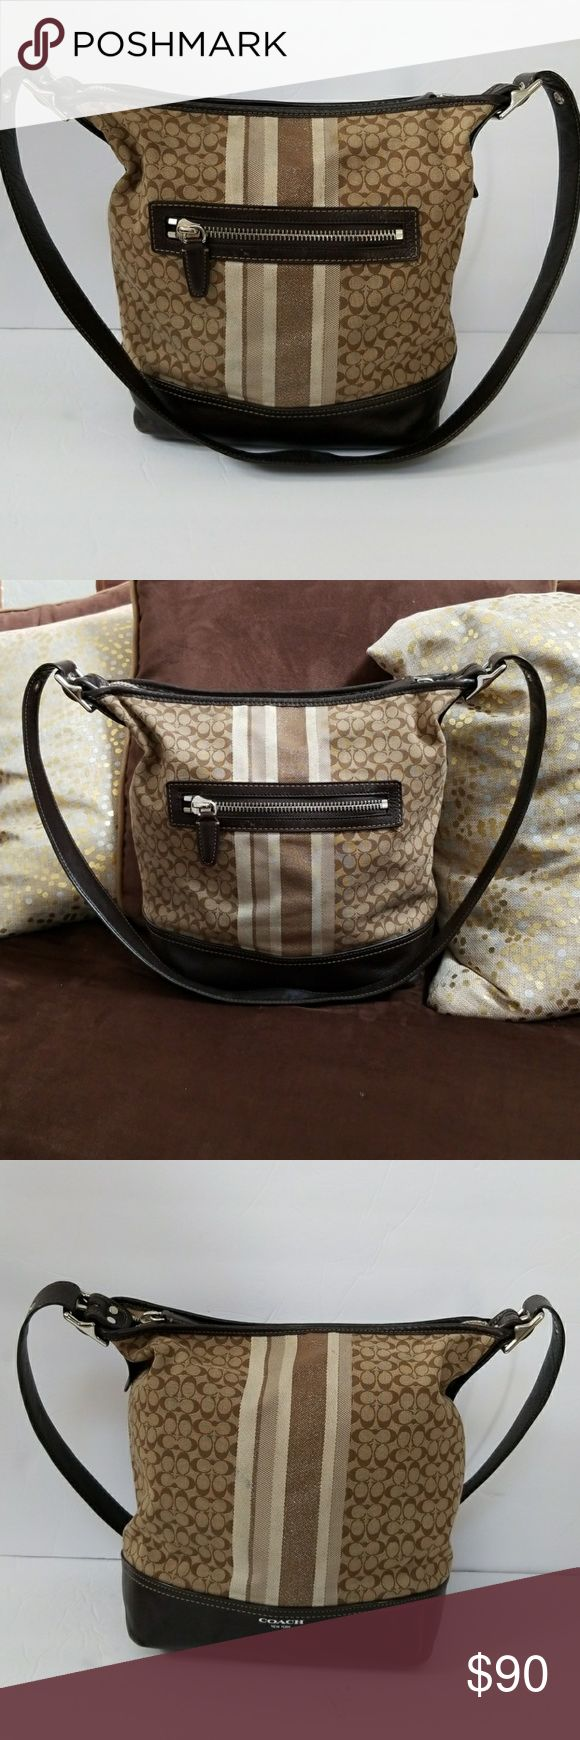 Coach tote bag Normal worn in perfect condition Coach Bags Totes